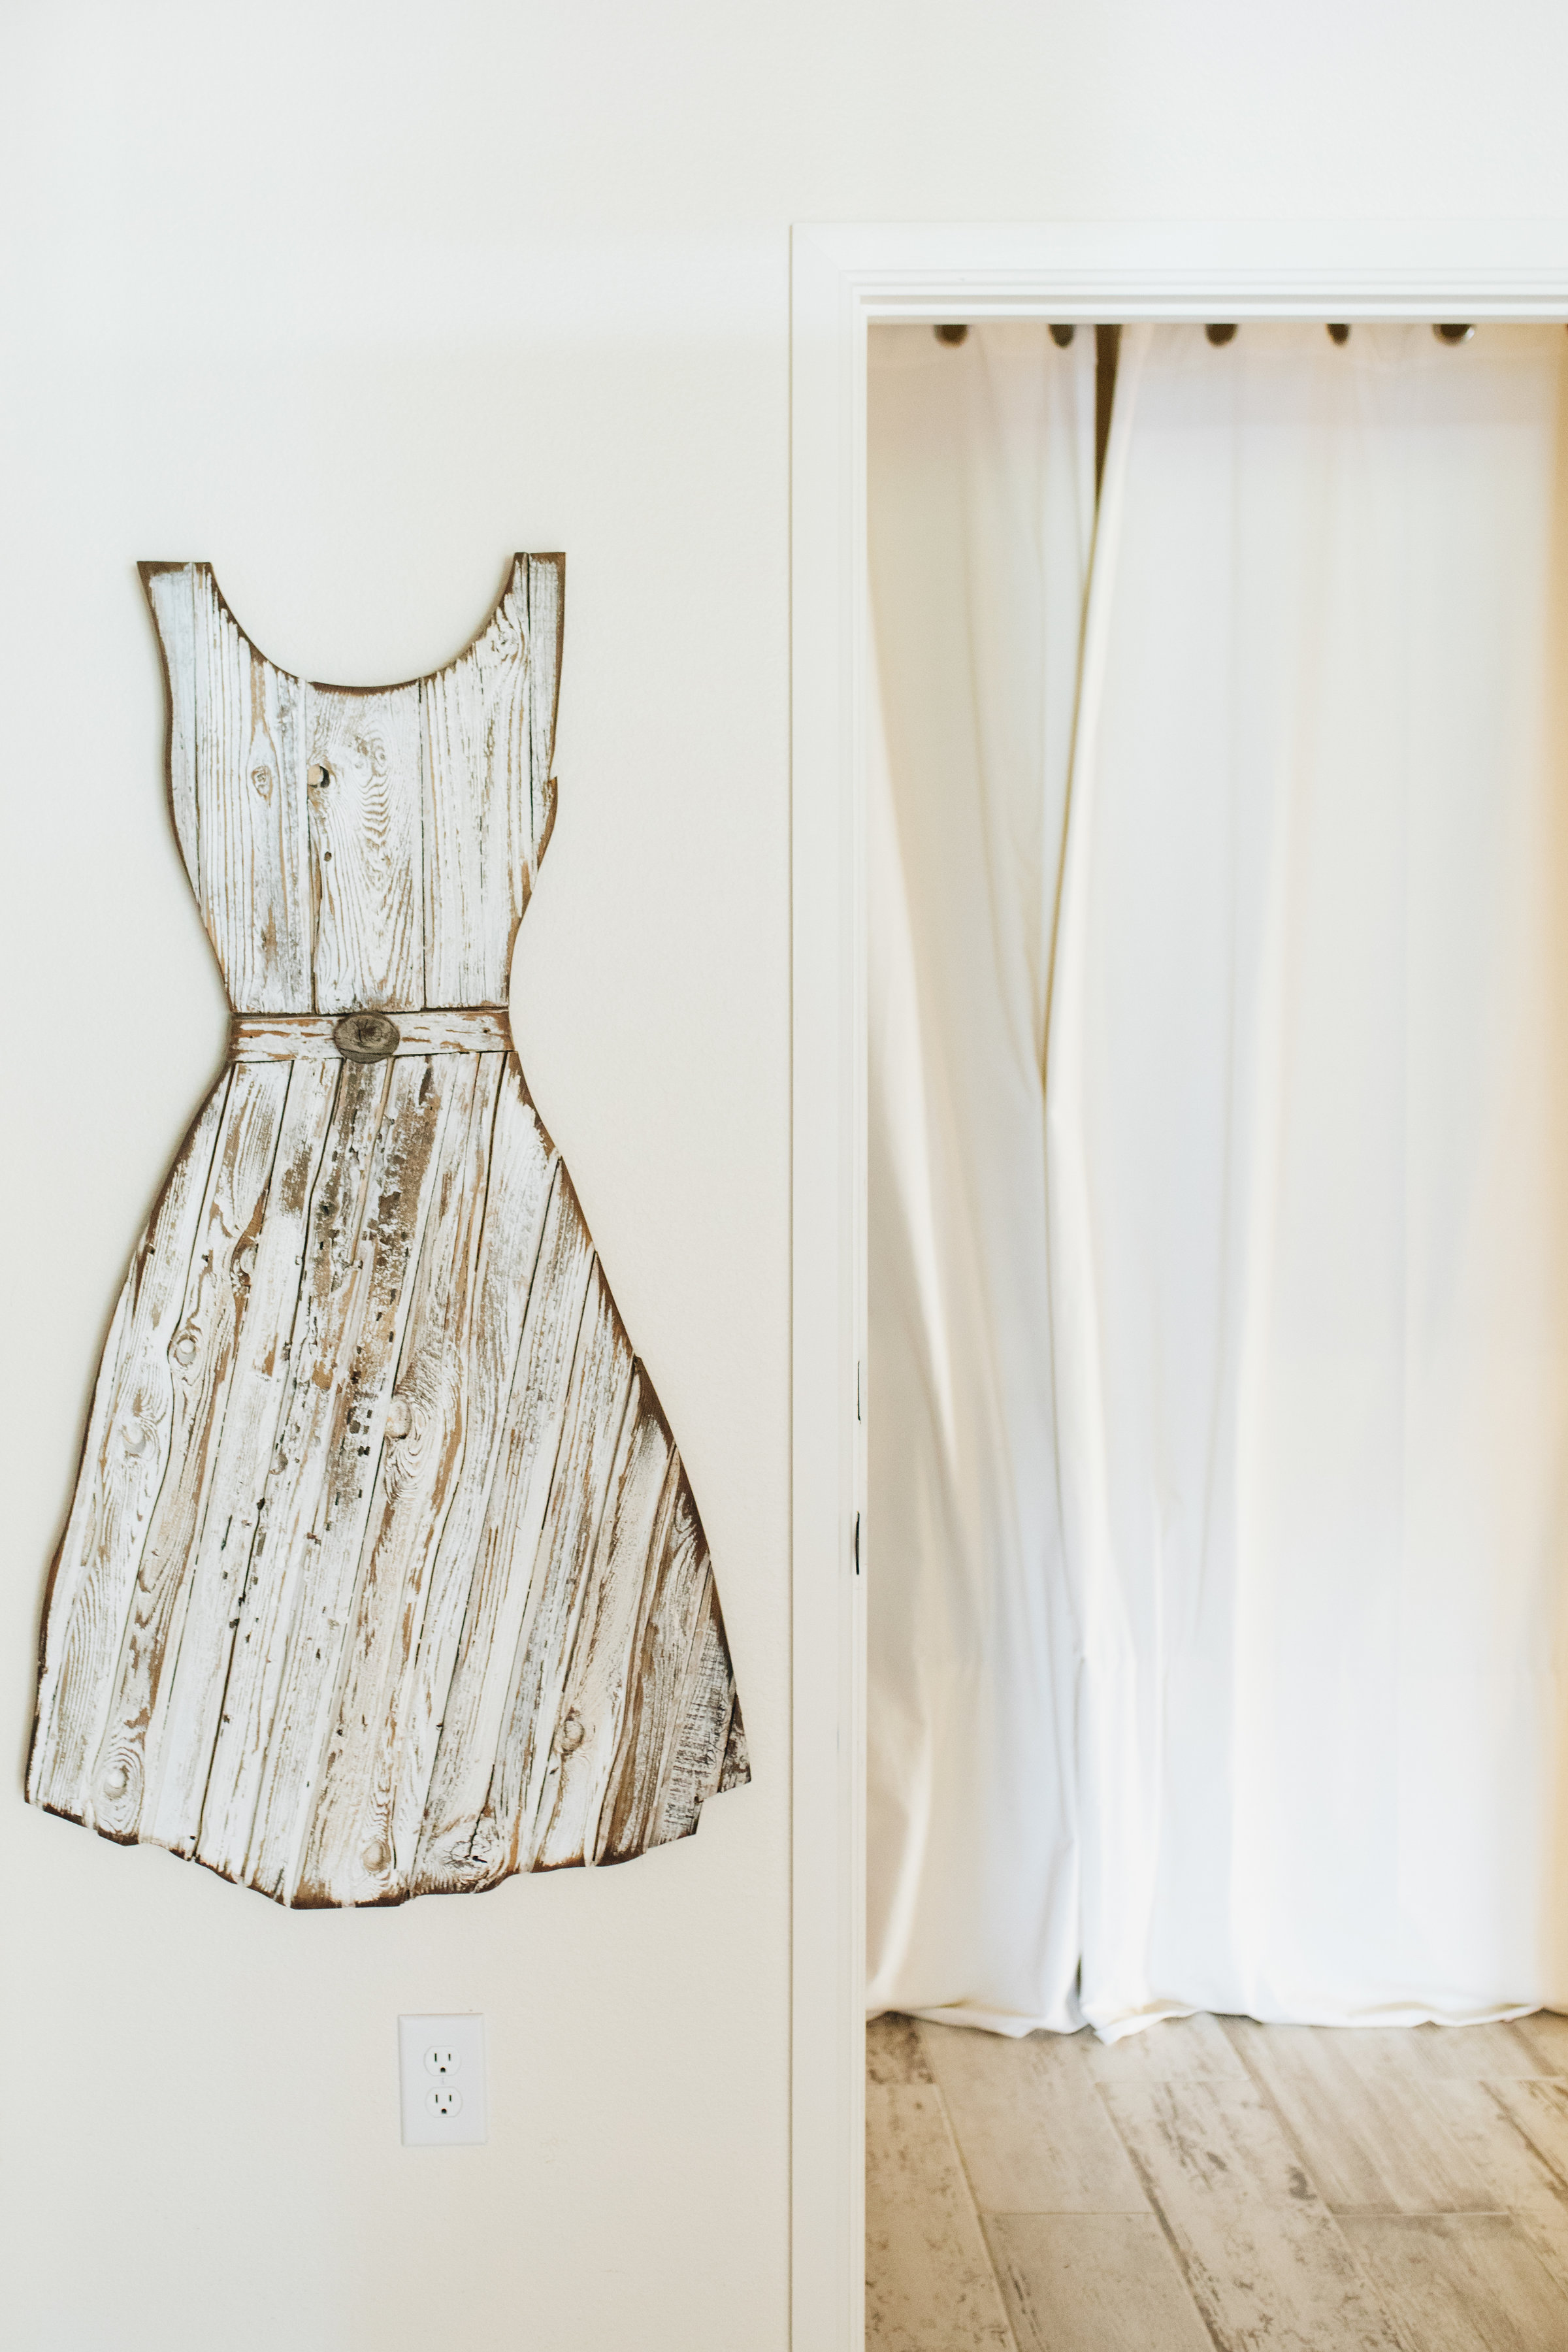 Doug Forrest Studio - Our friend Doug Forrest created the wooden dress hanging outside of the Guest Room in Boho. The piece complements the flooring and adds a feminine, handmade touch to its glam surroundings.